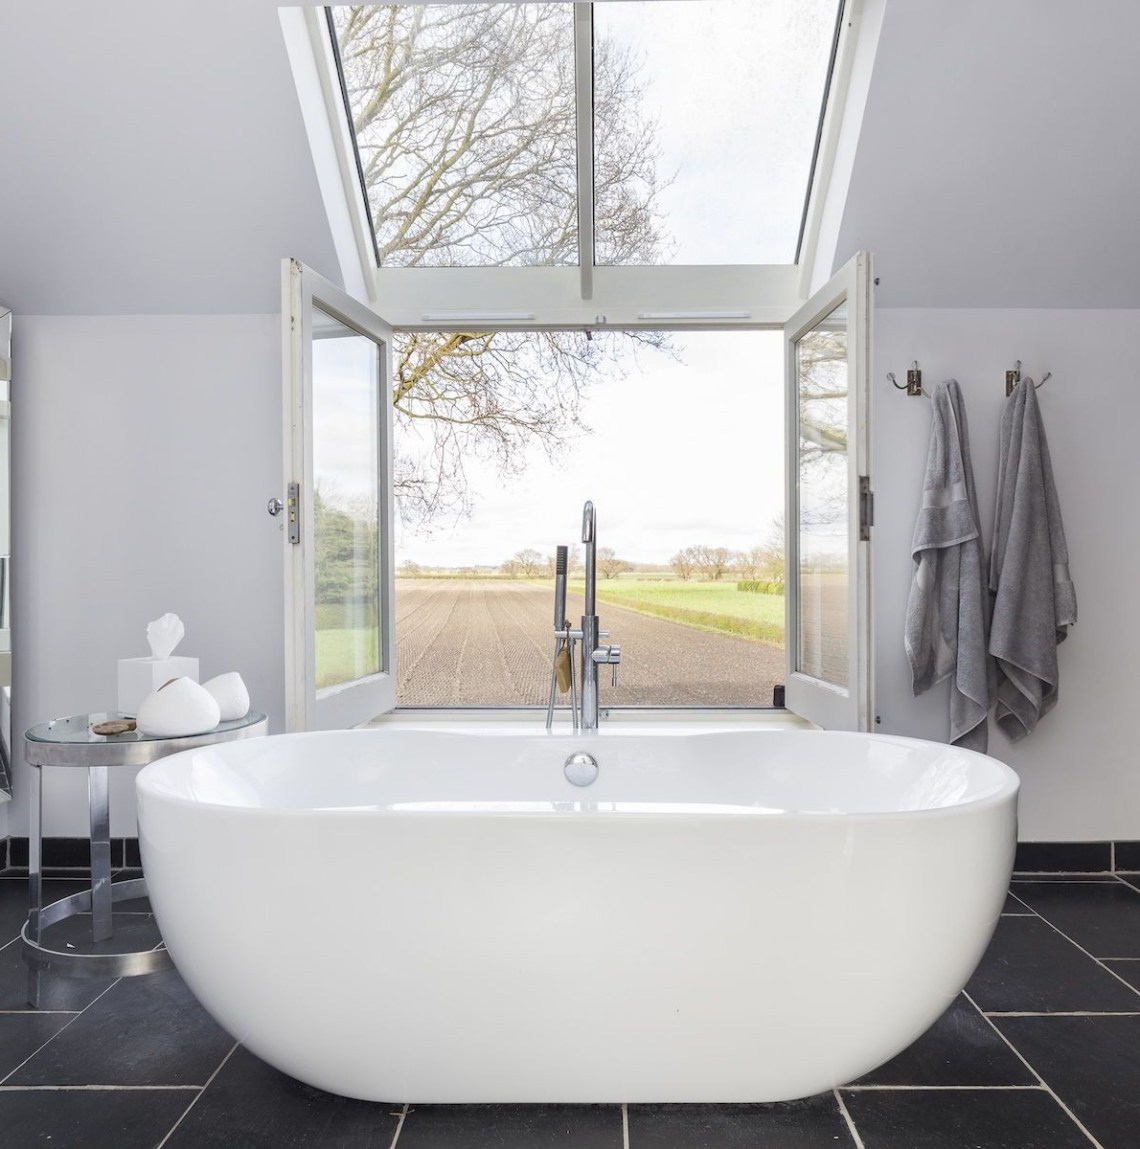 These Bathroom Design Trends Will Make A Surprising